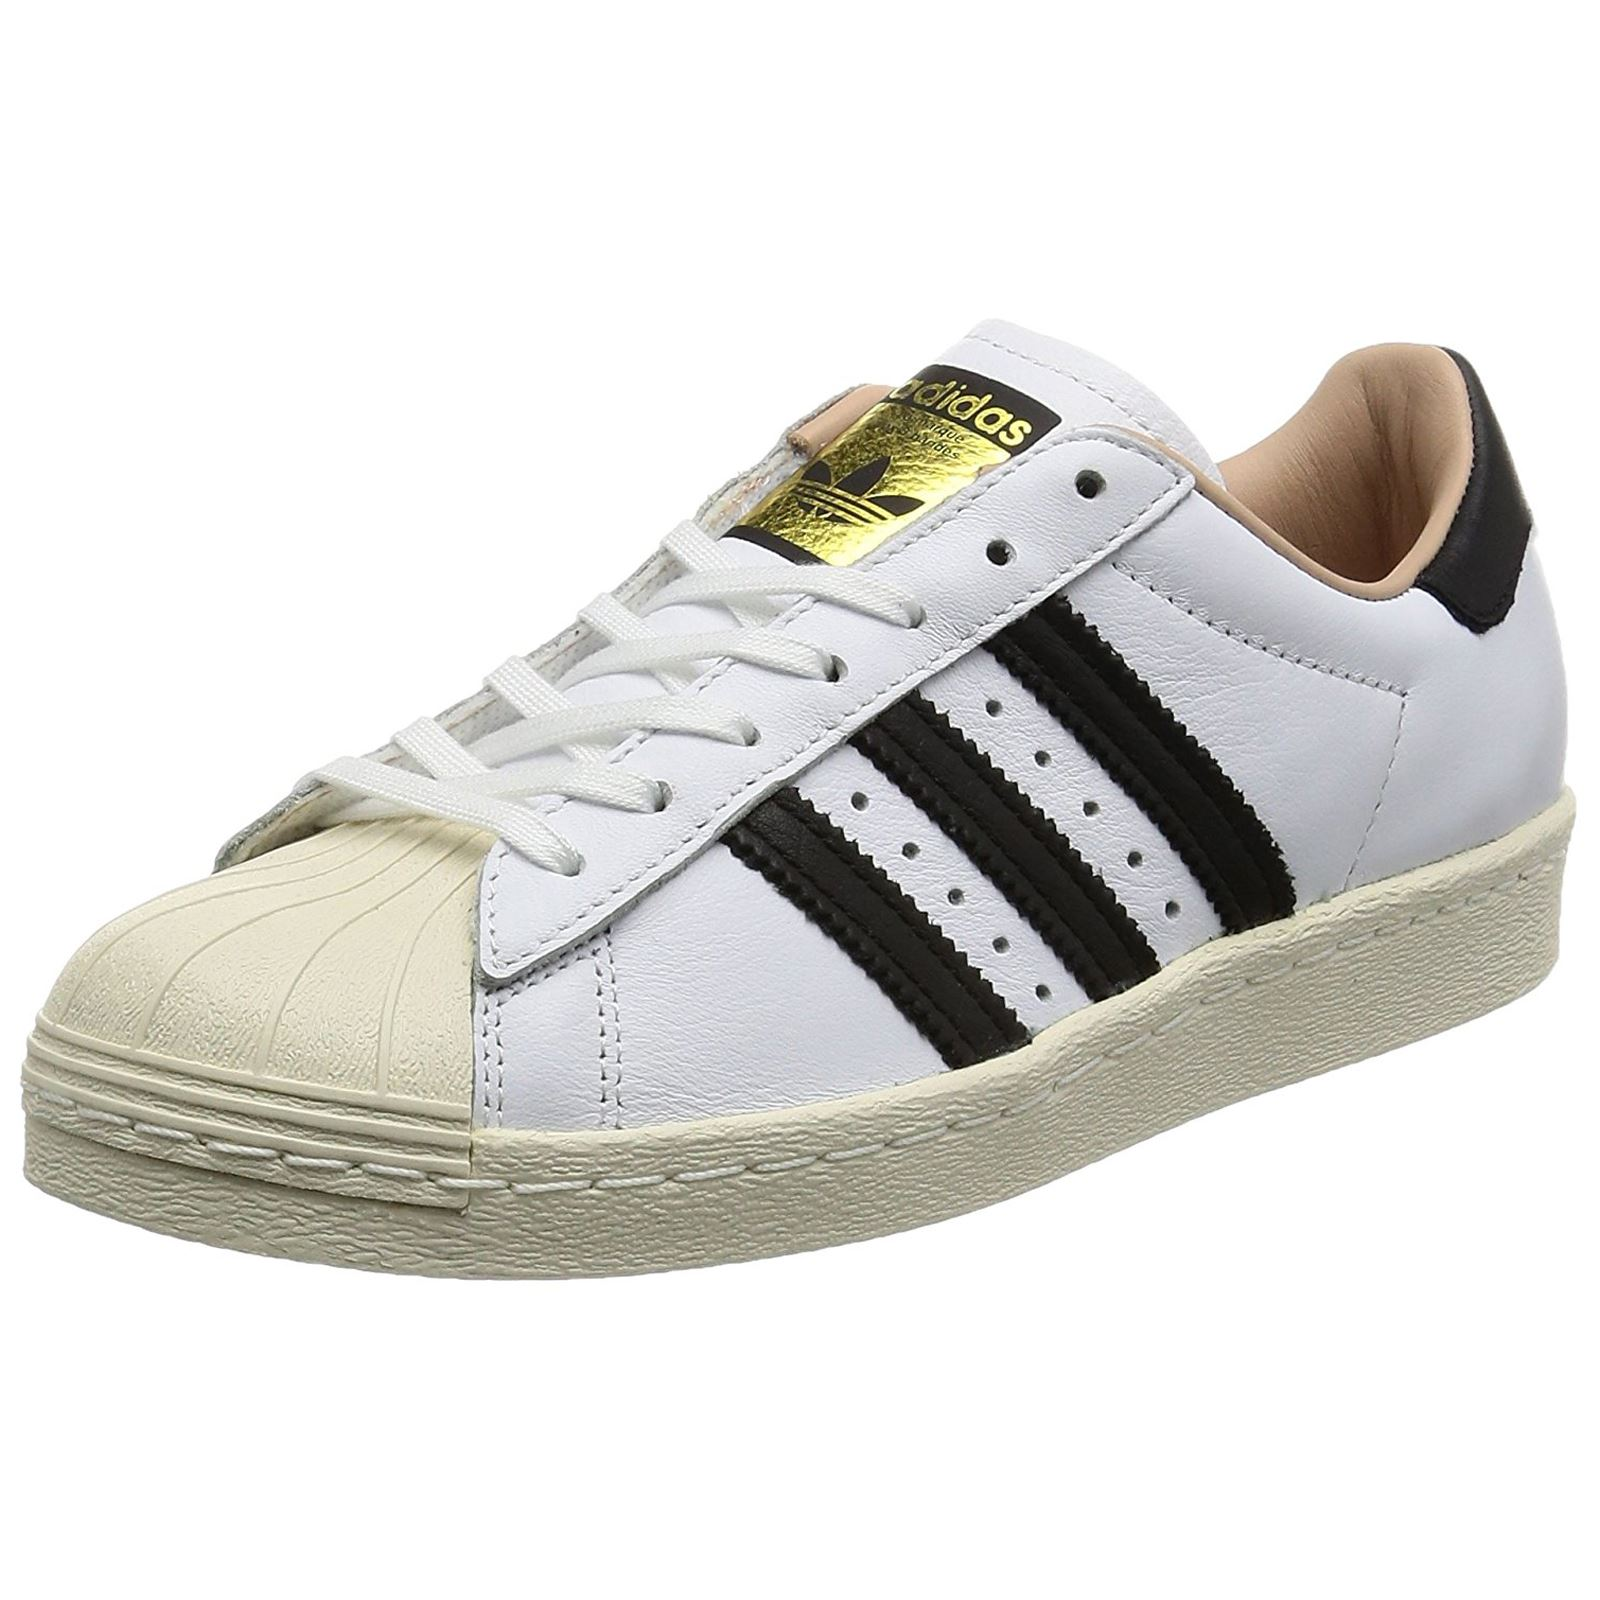 Adidas Superstar 80s White Womens Lace Up Trainers Leather  f2ad12da4f